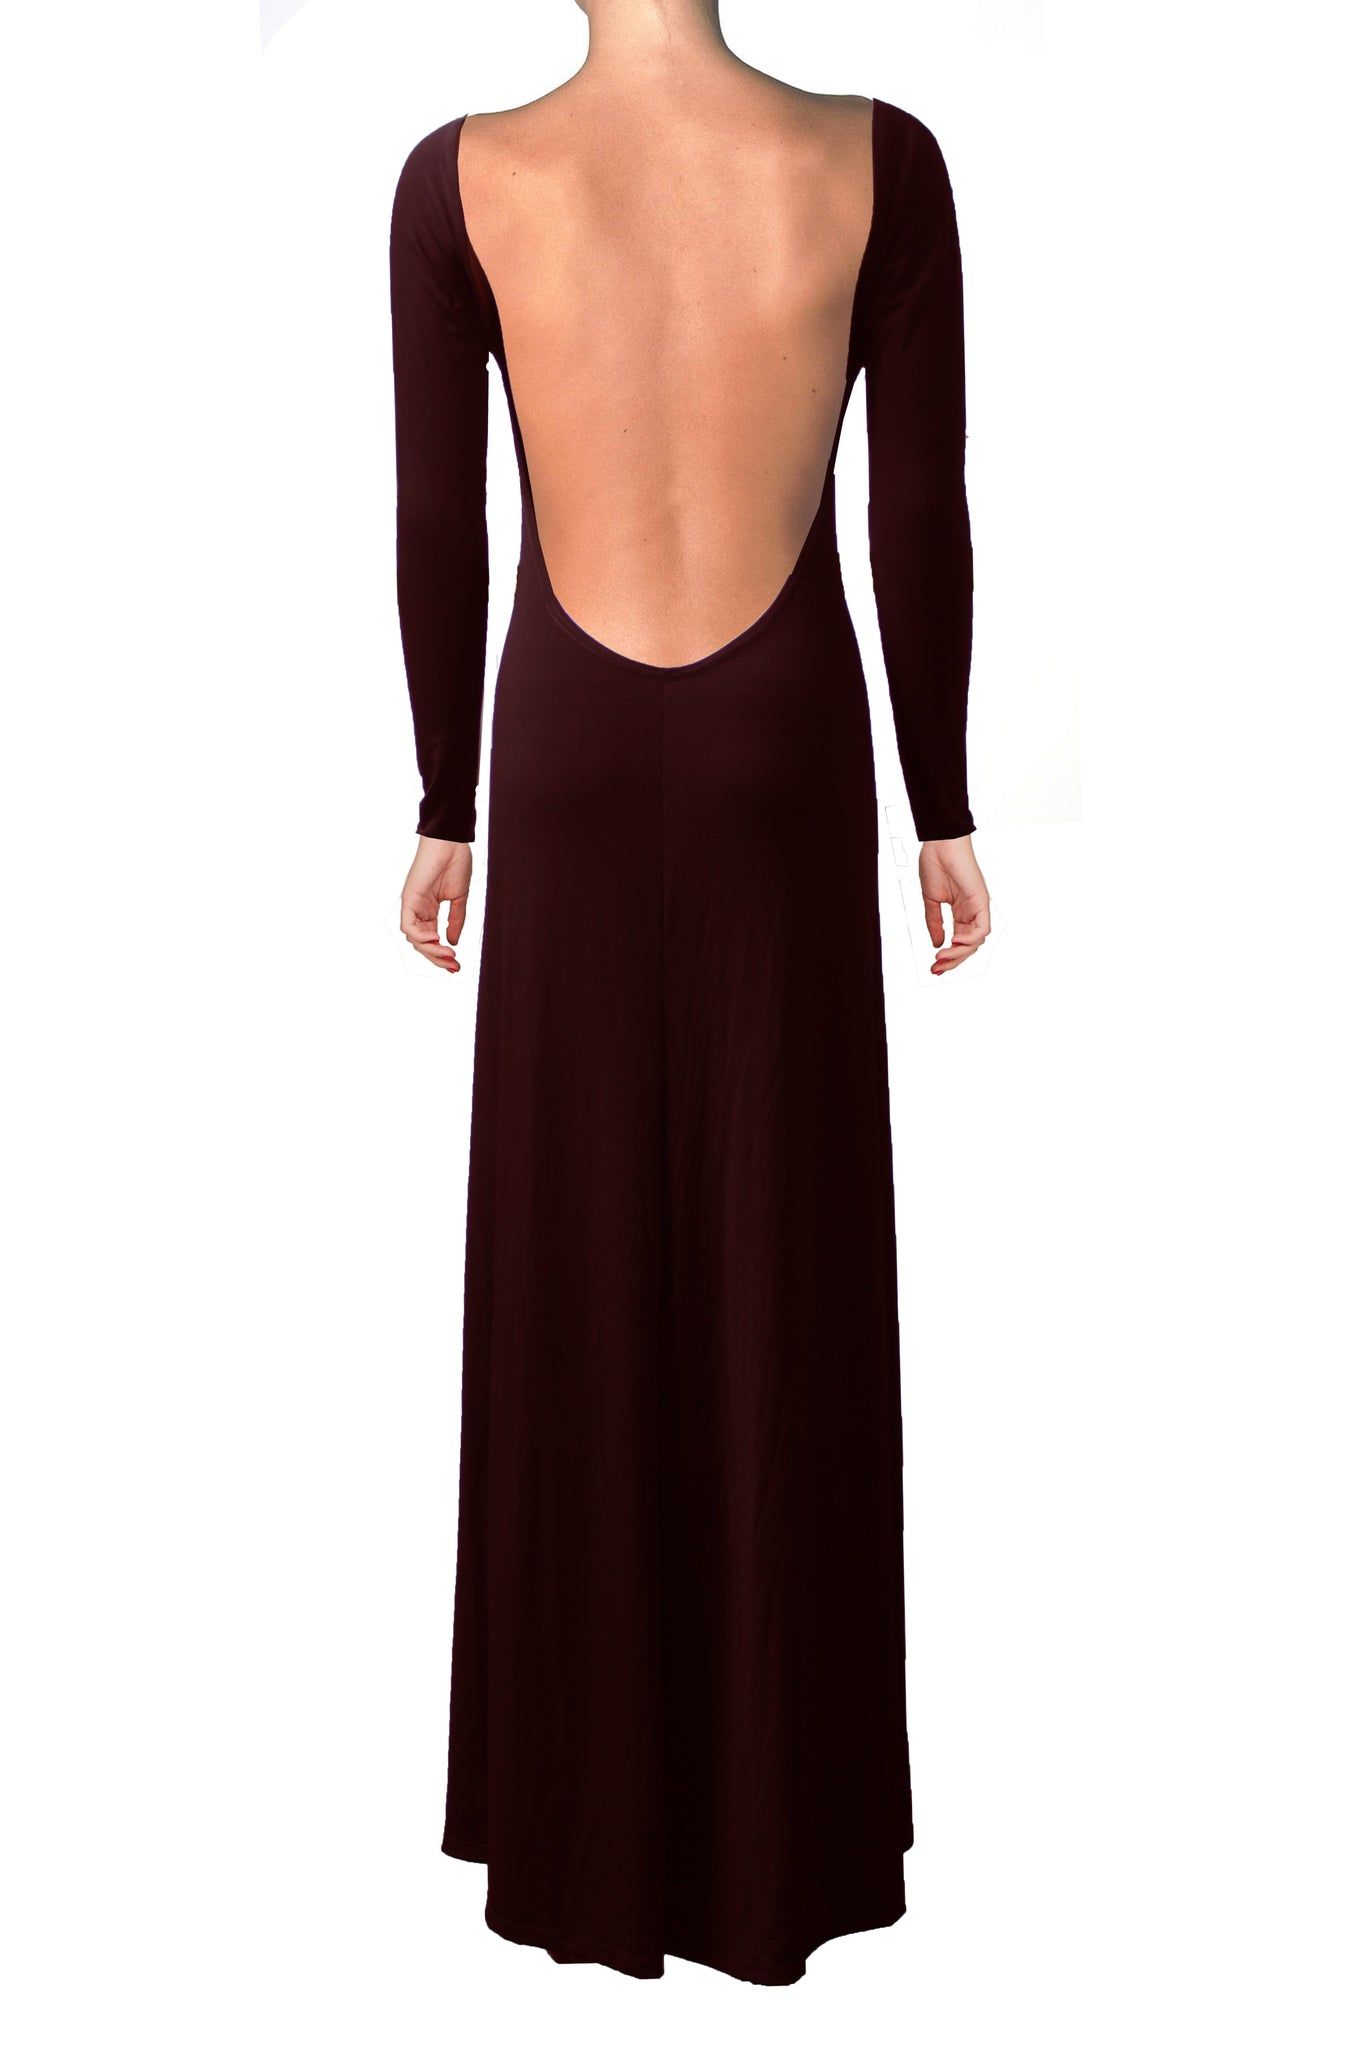 Open Back Dress Burgundy Bridesmaid Dress Backless Formal Dress Long Prom Dress XS S